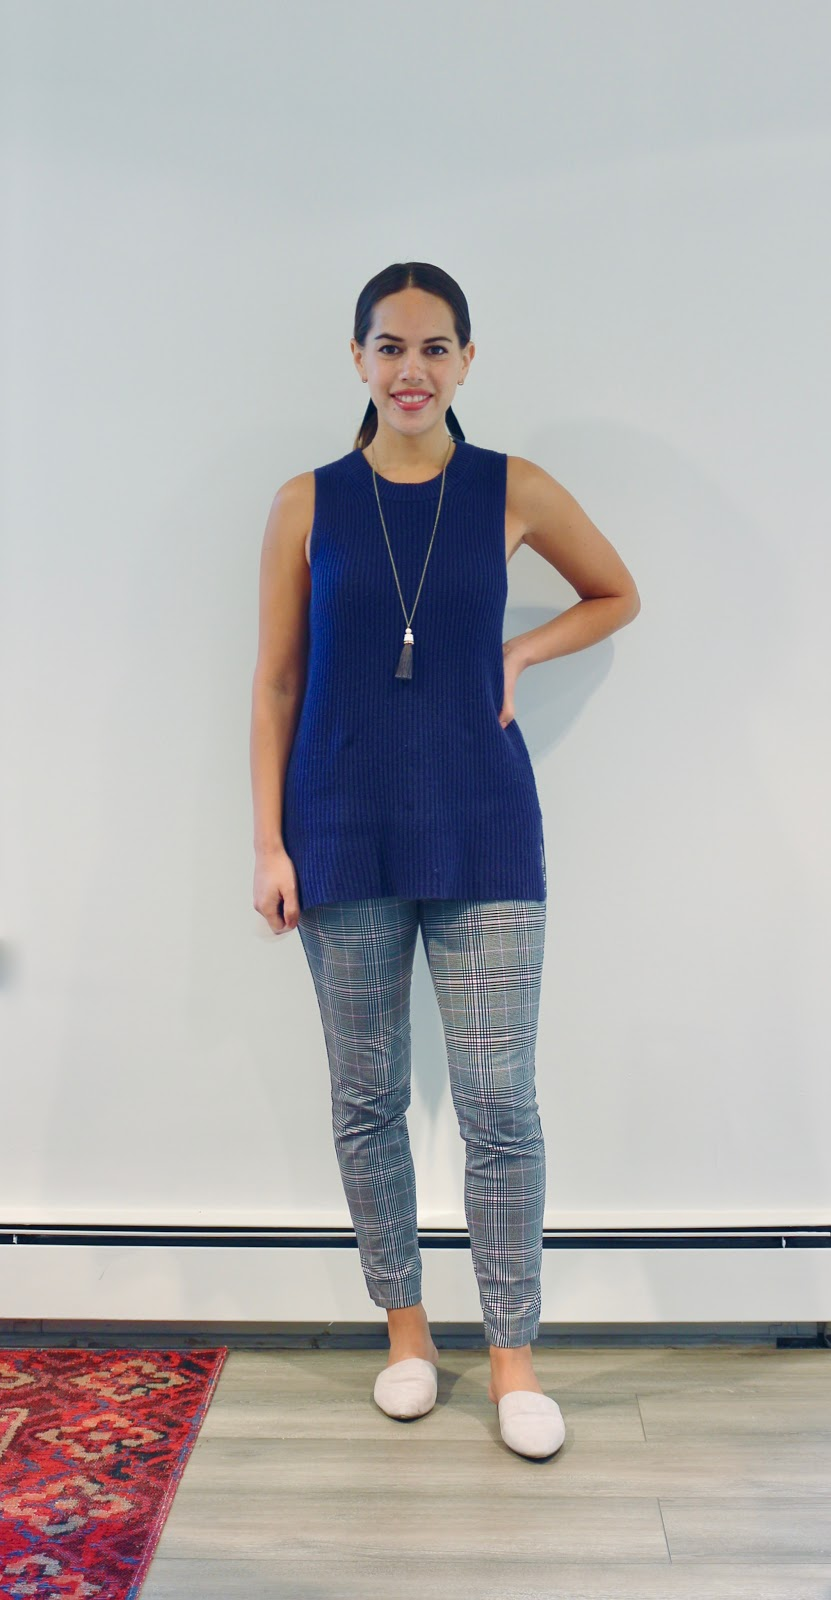 Jules in Flats - Plaid Pants with Sleeveless Knit Tunic (Business Casual Workwear on a Budget)